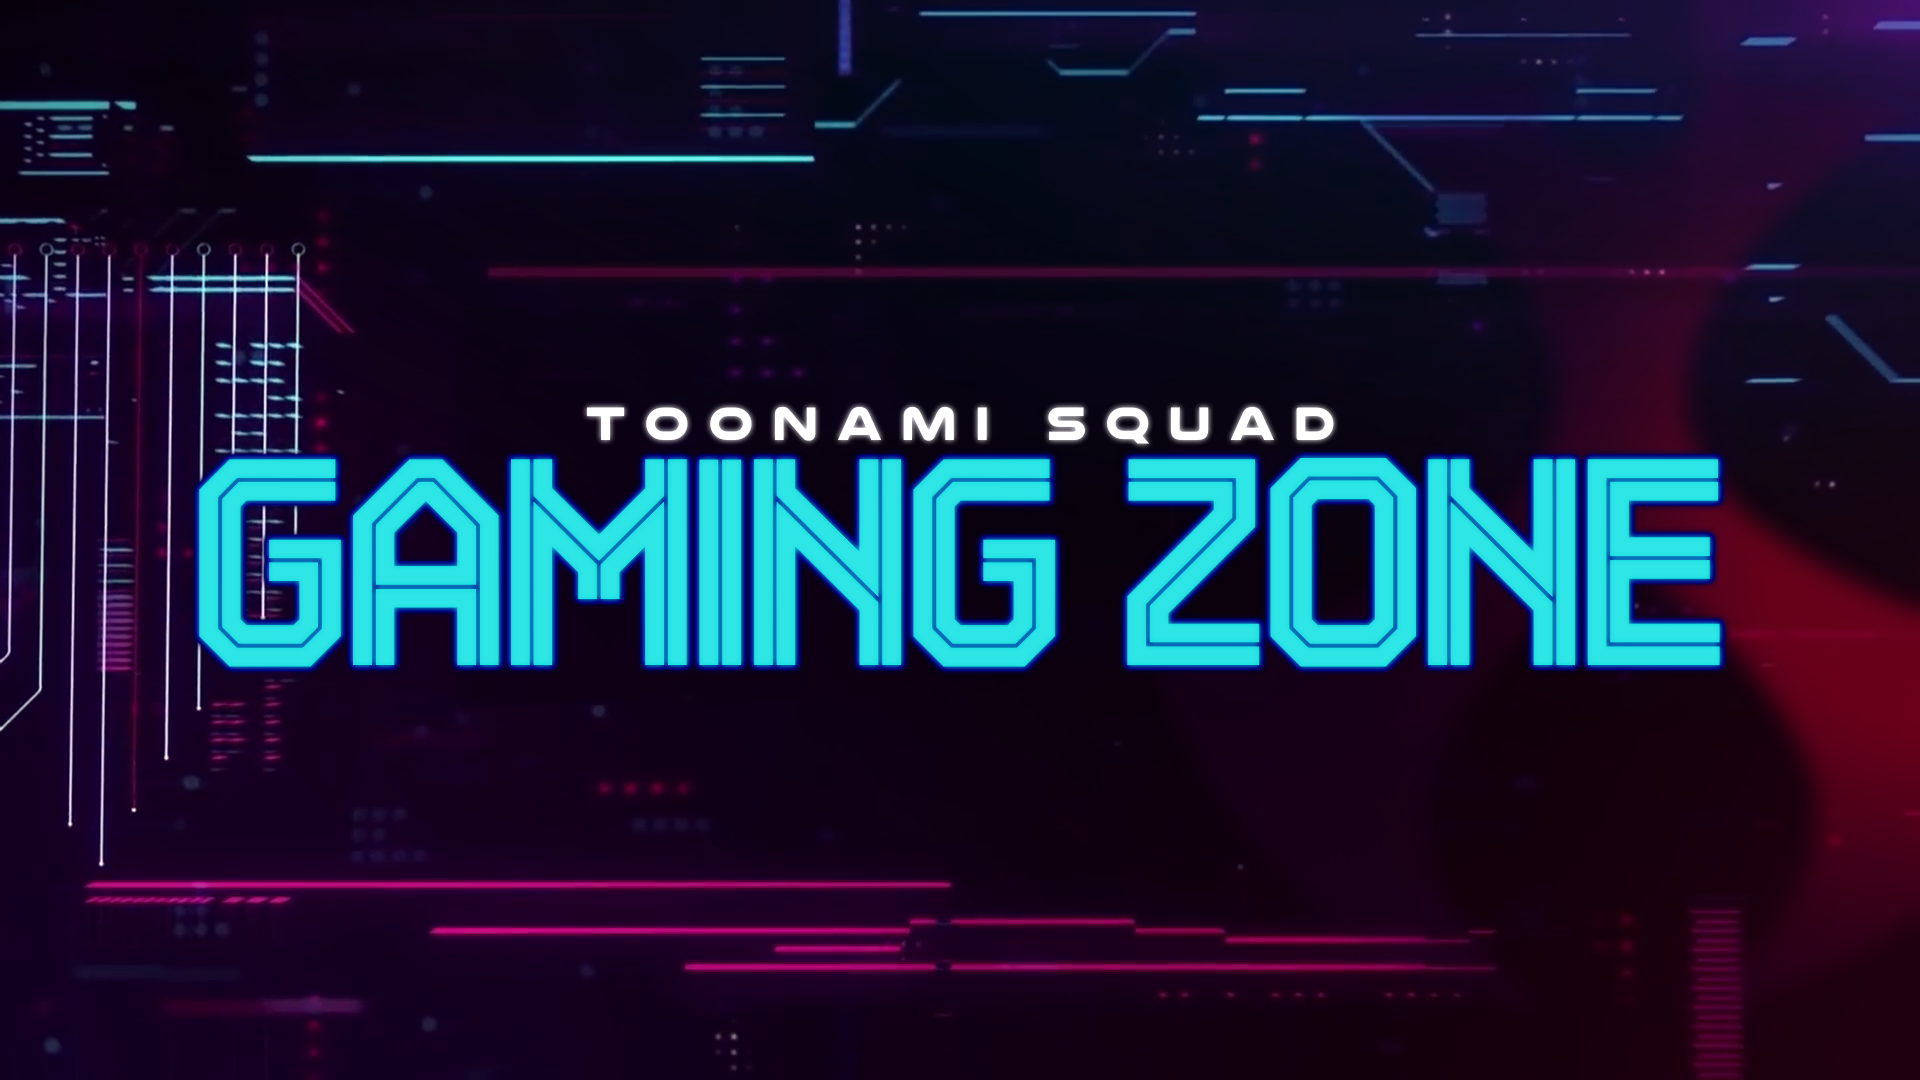 Toonami Squad Gaming Zone: ANNOUNCEMENT